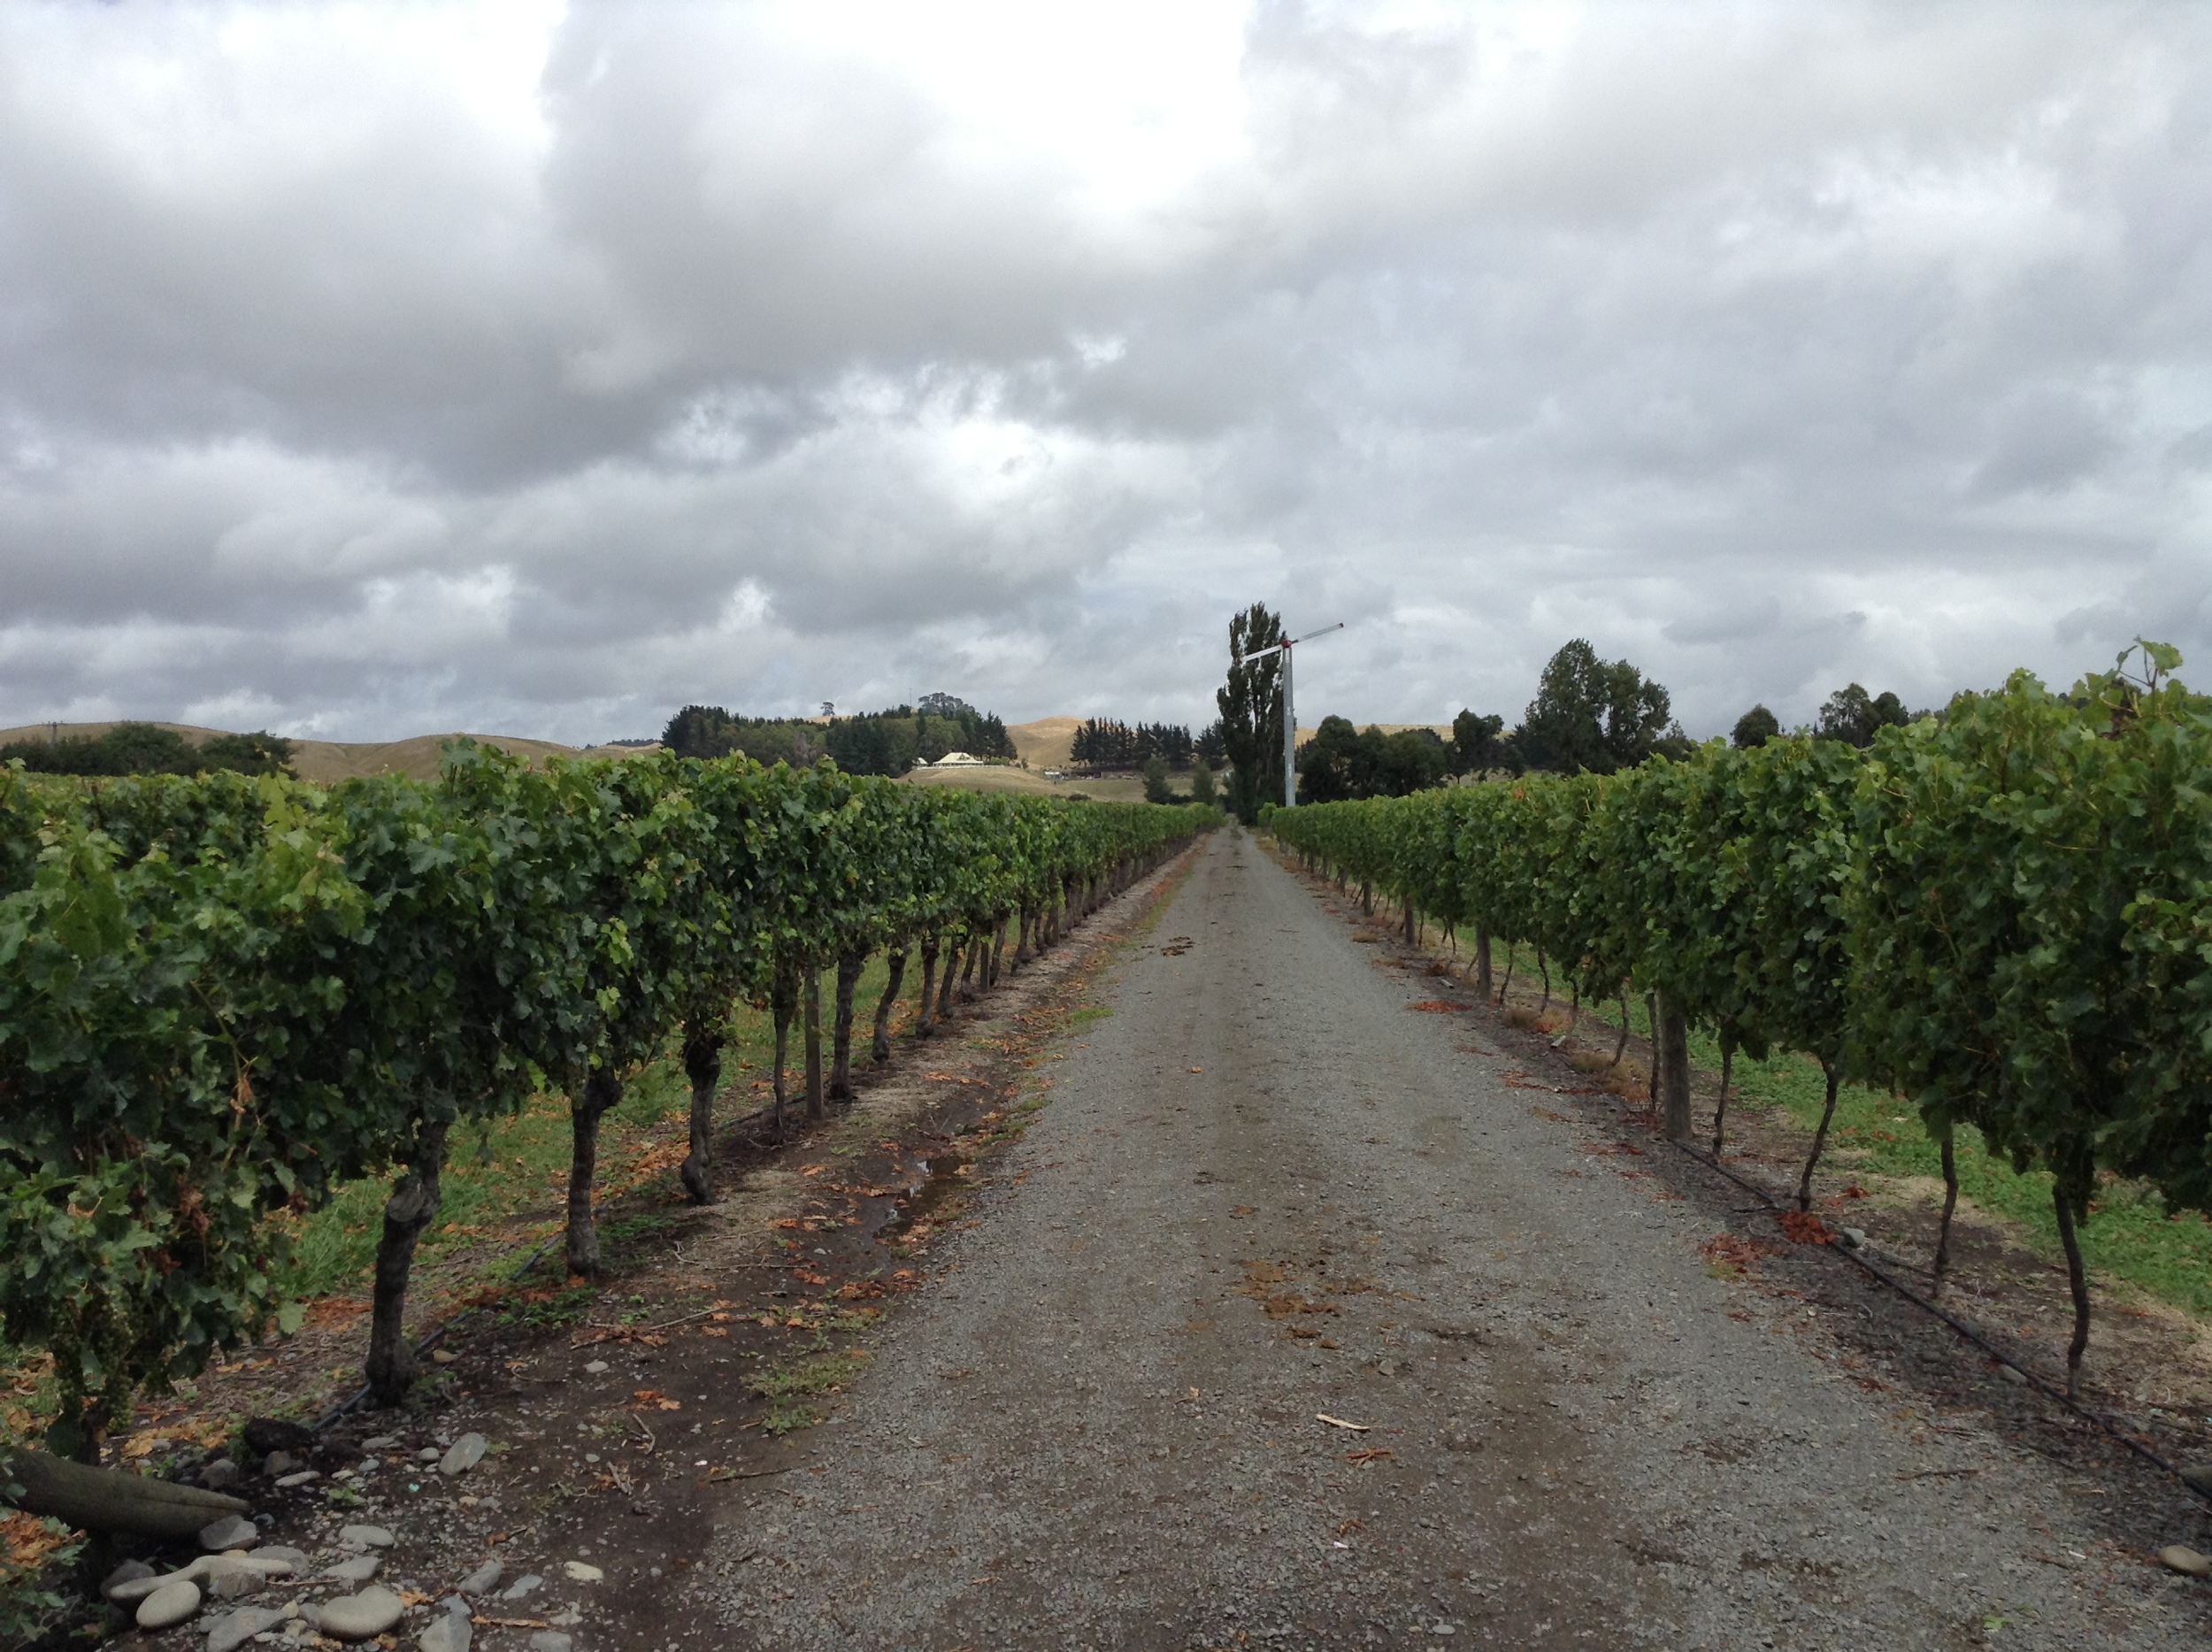 An overcast day with light showers, didn't stop my cellar door host from taking me on a tour of the home vineyard at Te Awanga